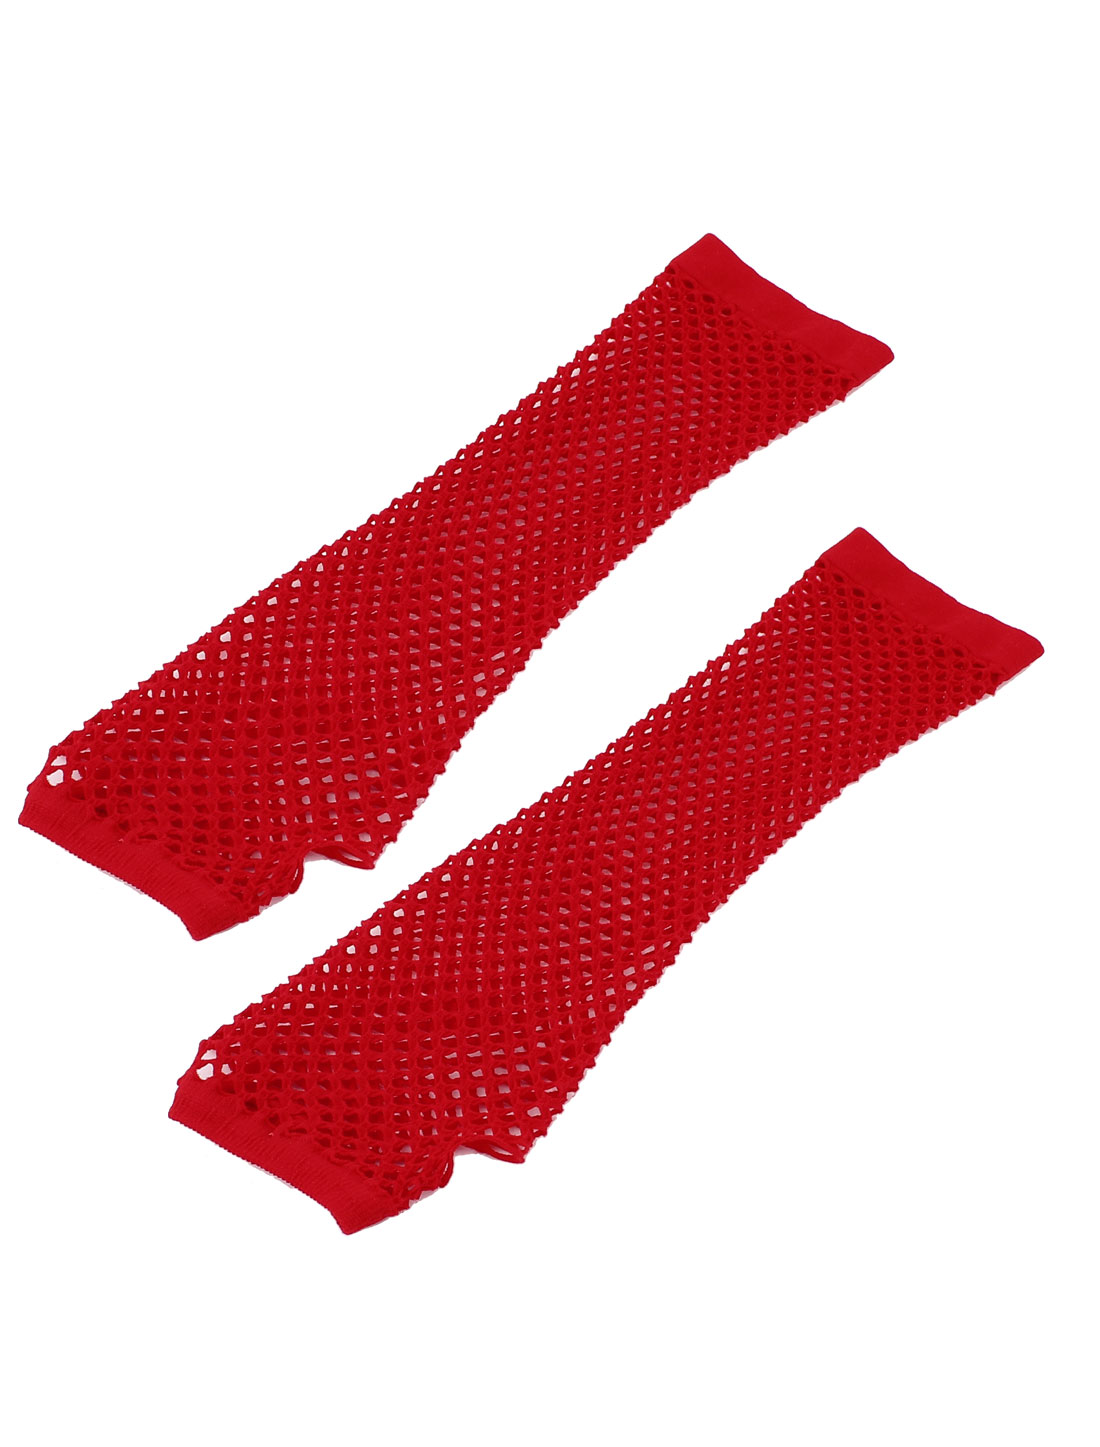 Woman Elbow Length Elastic Fishnet Fingerless Arm Warmers Gloves Red Pair